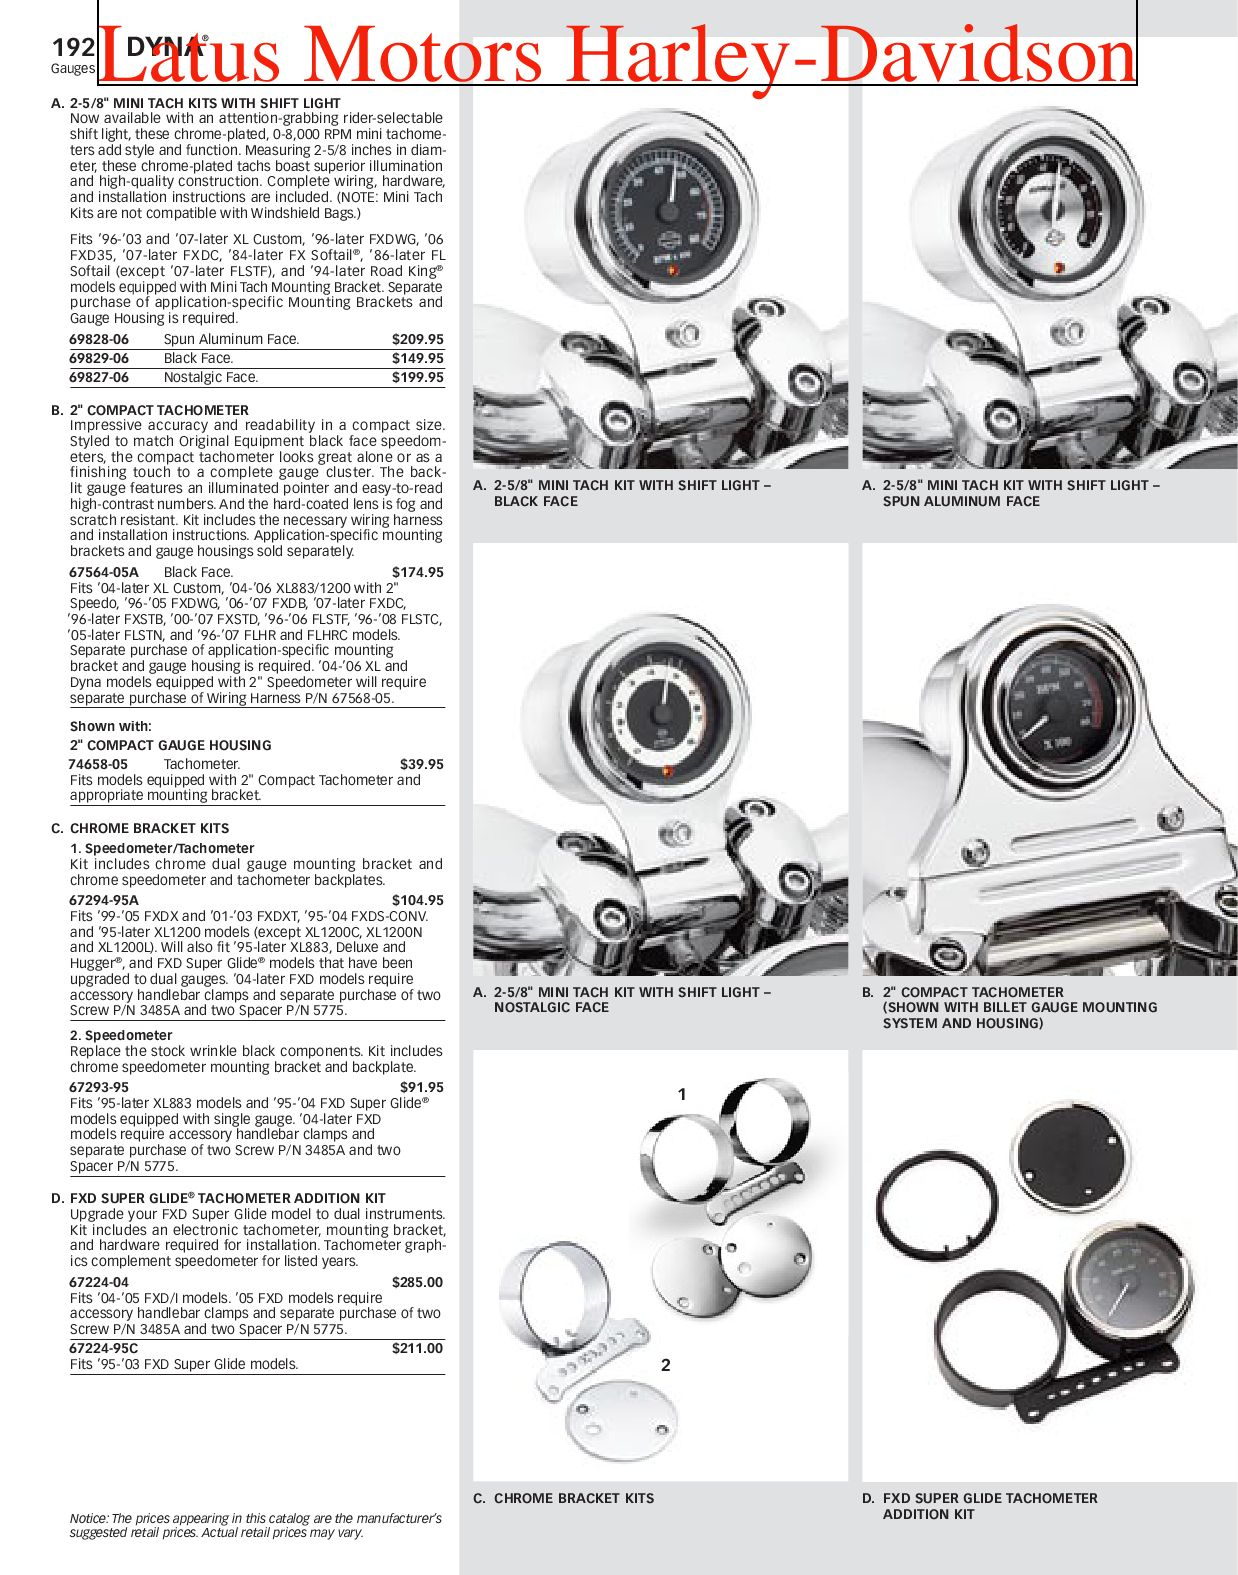 Harley Davidson Dyna Parts And Accessories Catalog By Fxd Wiring Harness Of Portland Issuu